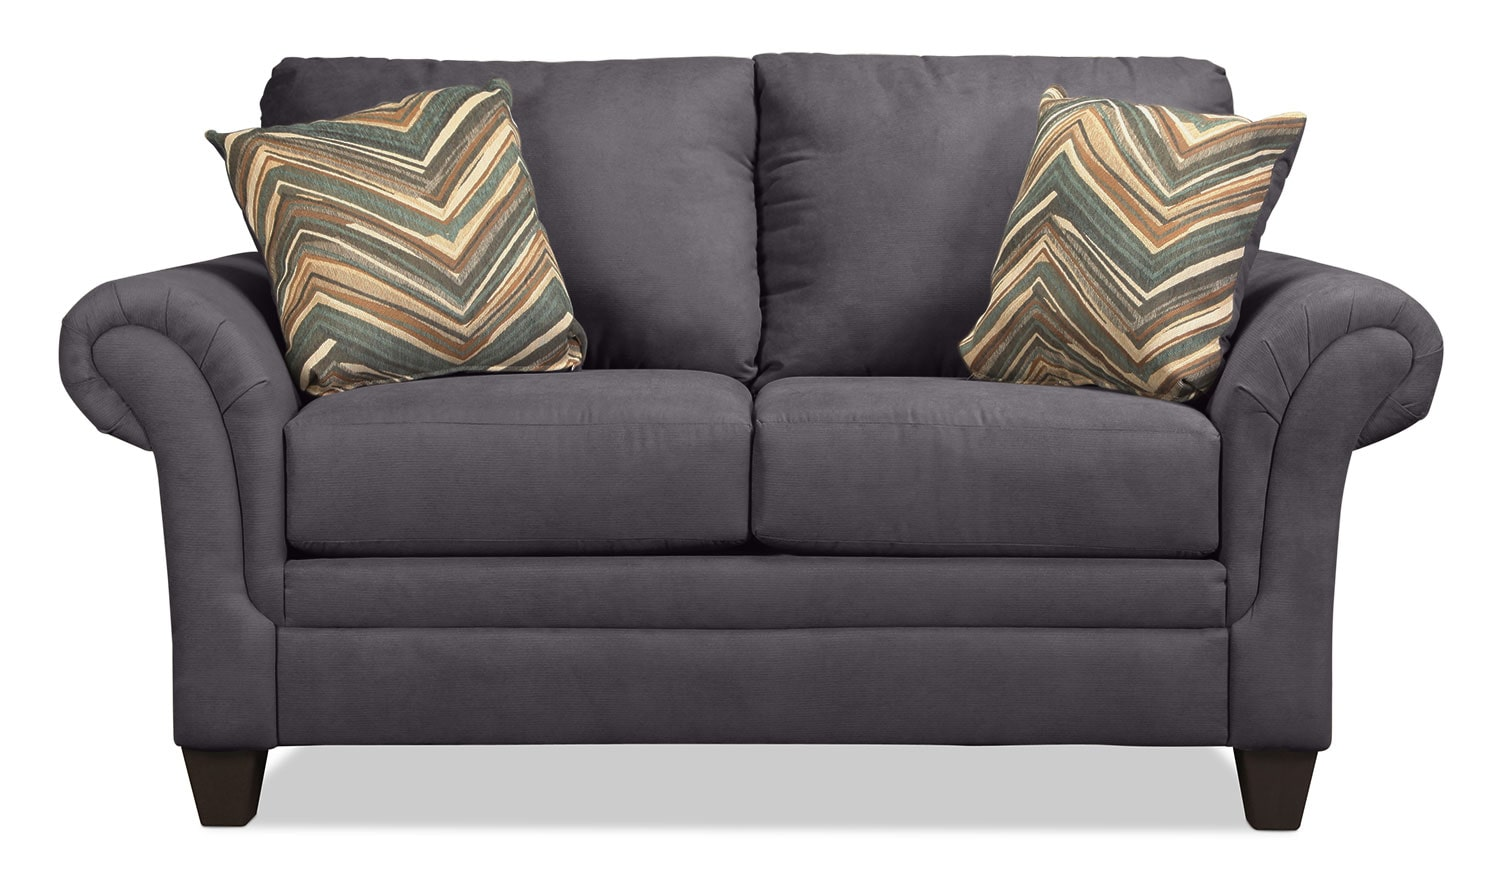 Living Room Furniture - Vancouver Loveseat - Gunmetal